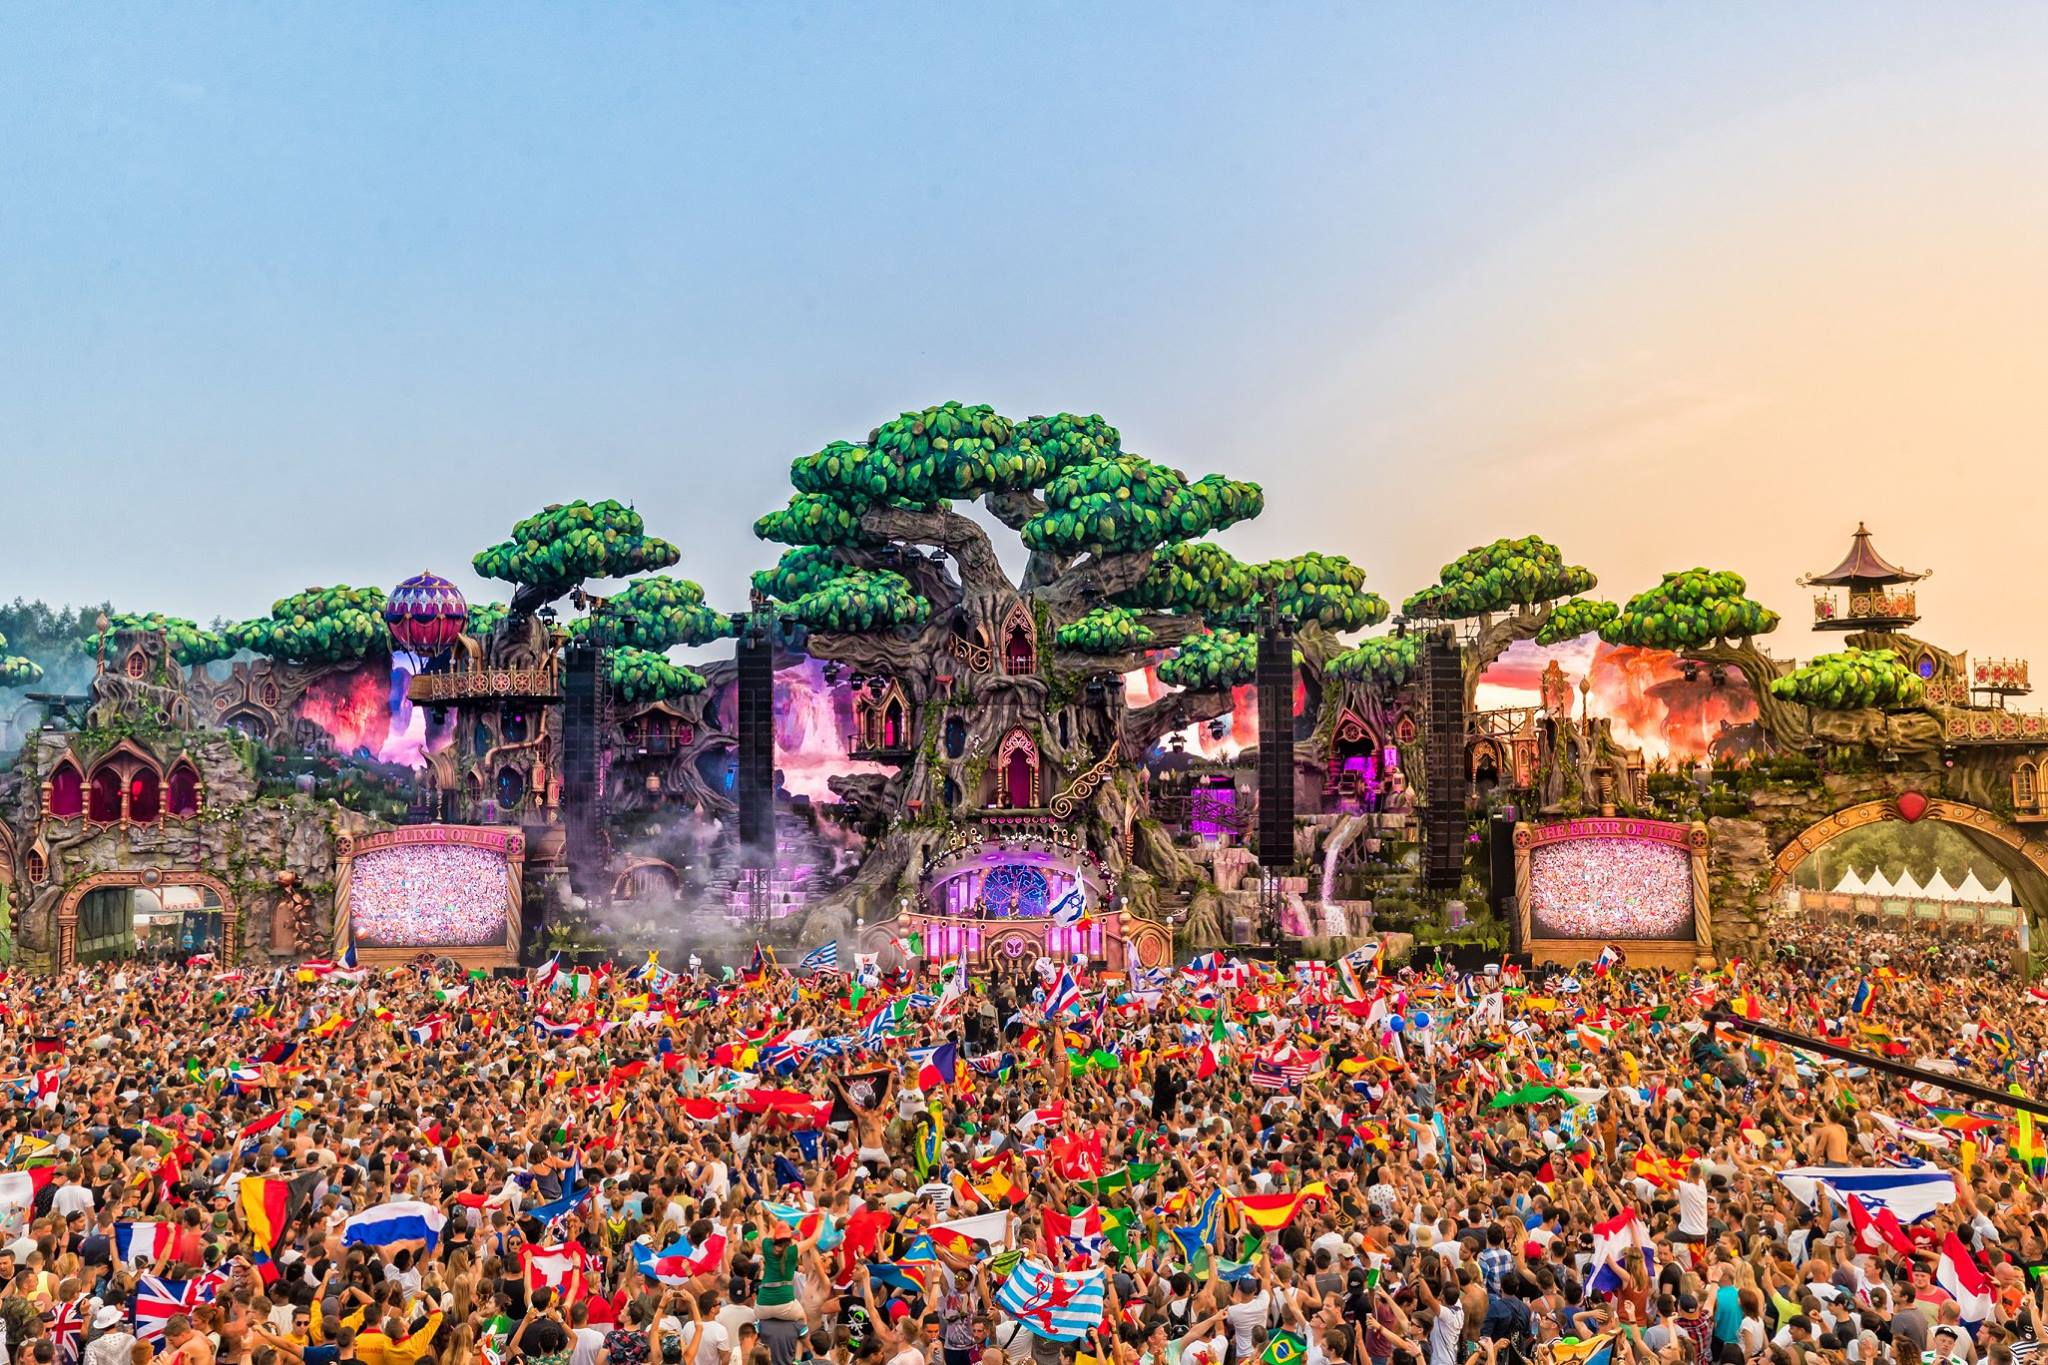 Tomorrowland Announces Full 2017 Lineup Featuring Over 1,000 DJs